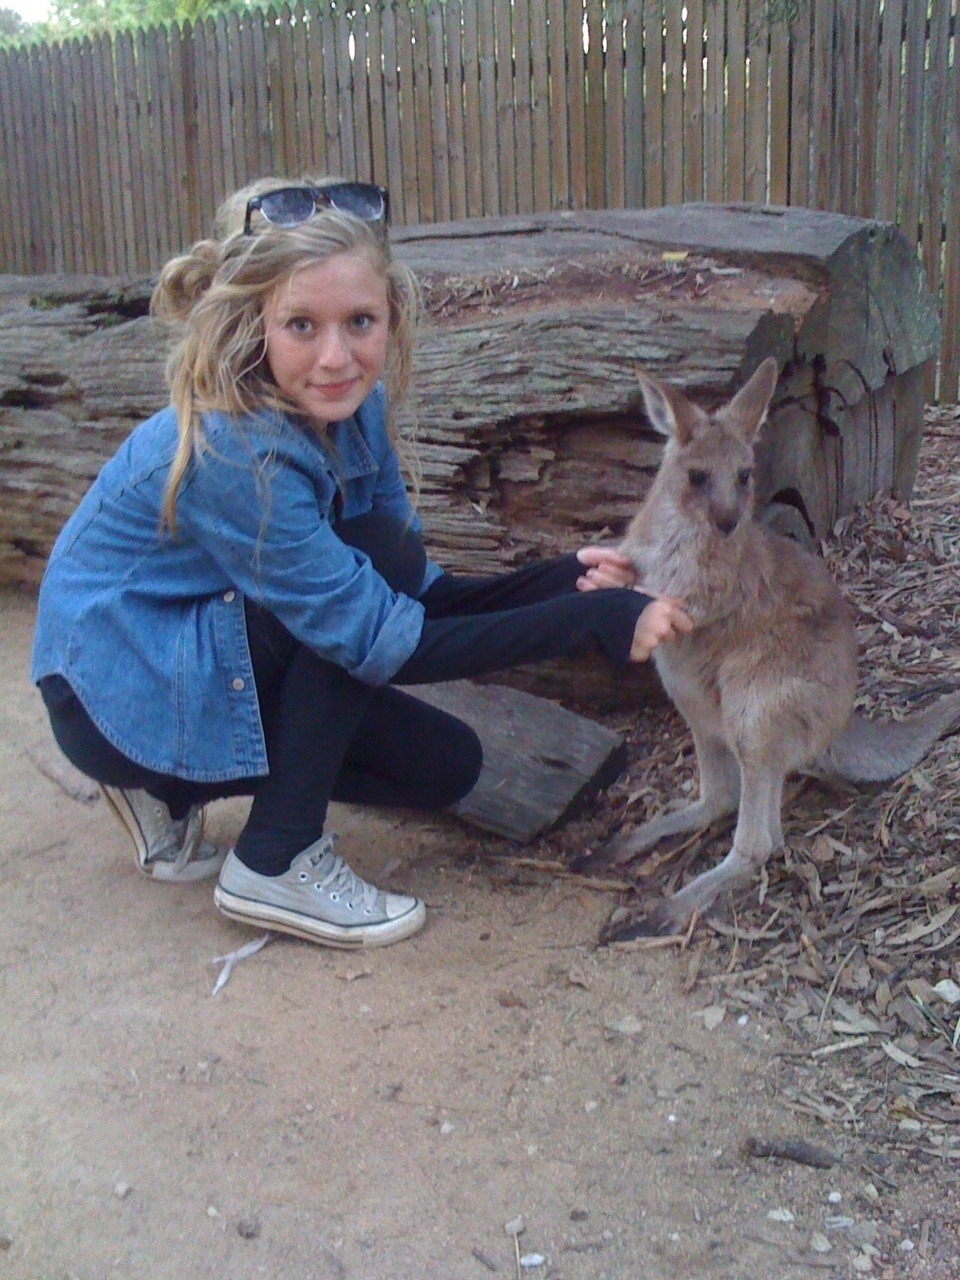 animal, aussi, australia, beautiful, blonde